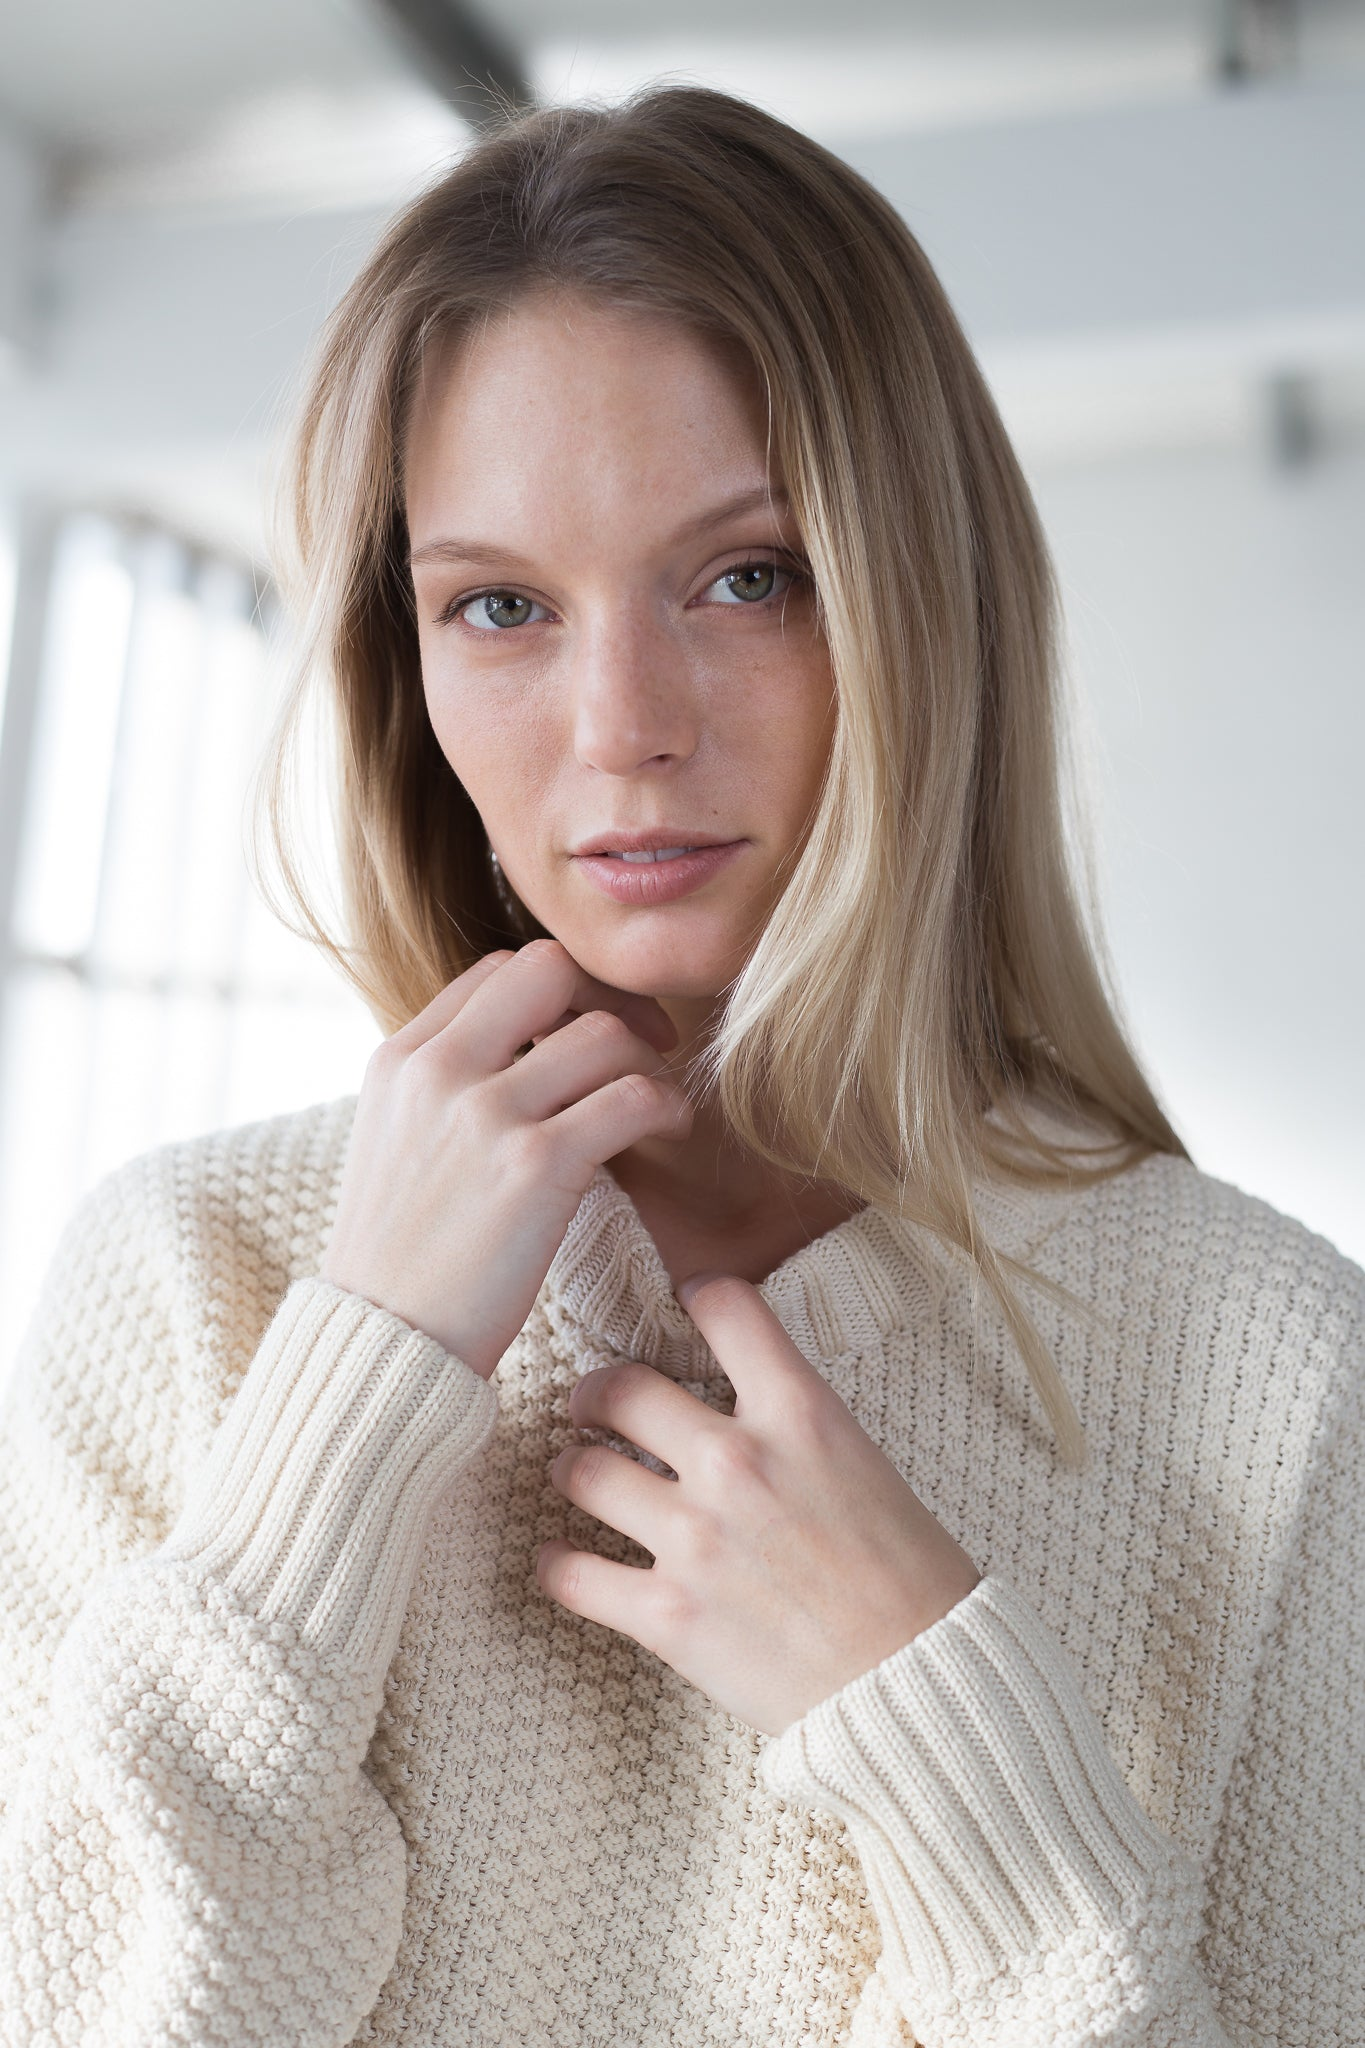 The model wears a natural sustainable organic cotton knitted rice cubes pullover with low neck, frontal view.